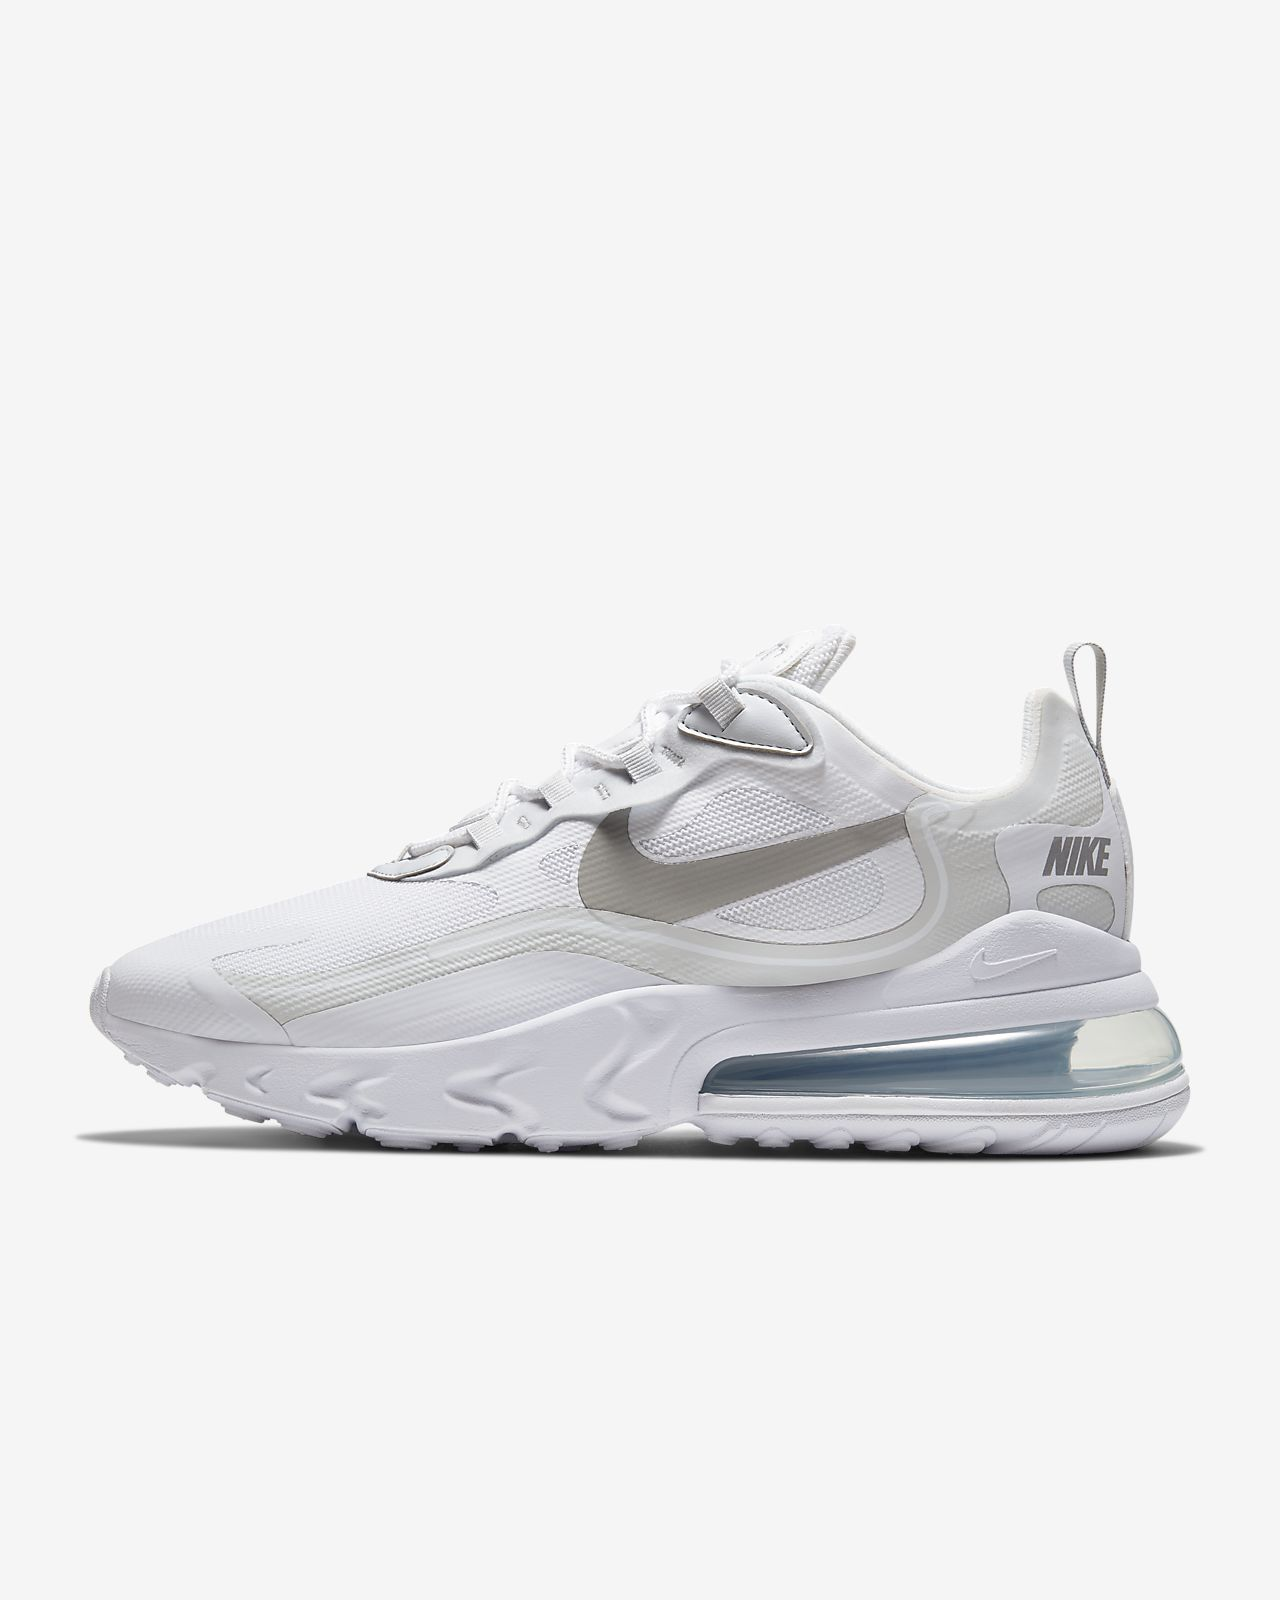 nike air max wavy performance review